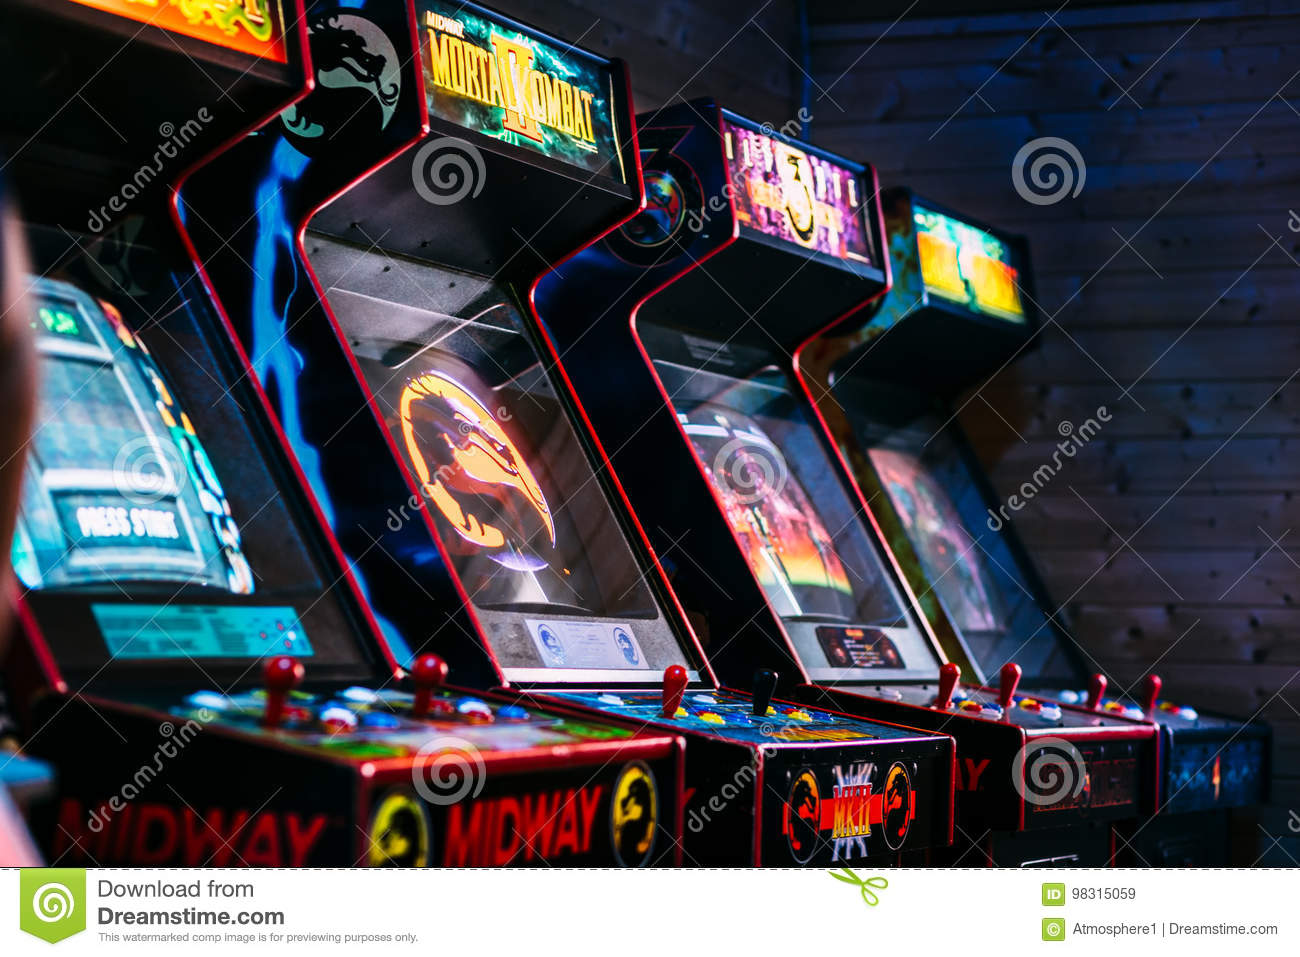 Line Of Cult Action Old Arcade Video Games From Late 90`s ...